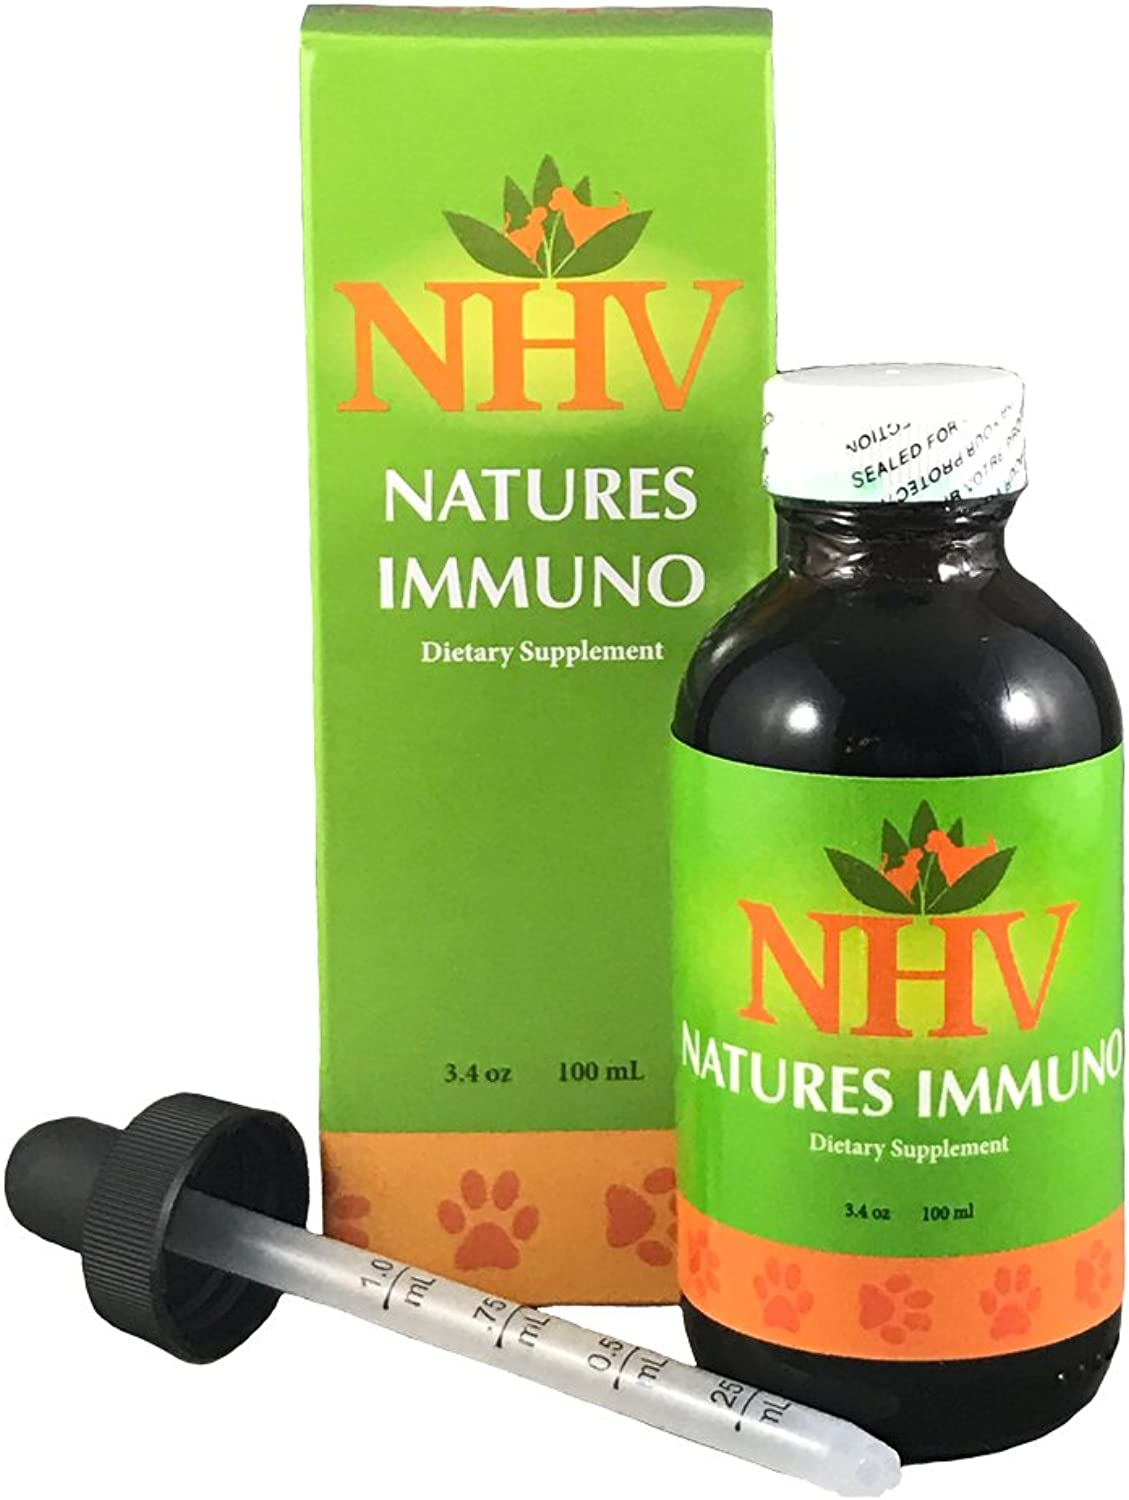 NHV Natures Immuno   Natural Medicinal Mushroom Supplements for Dogs, Cats & Small Pets, Boost Immune System for Cat, Dog & Small Pet, Support Heart Health